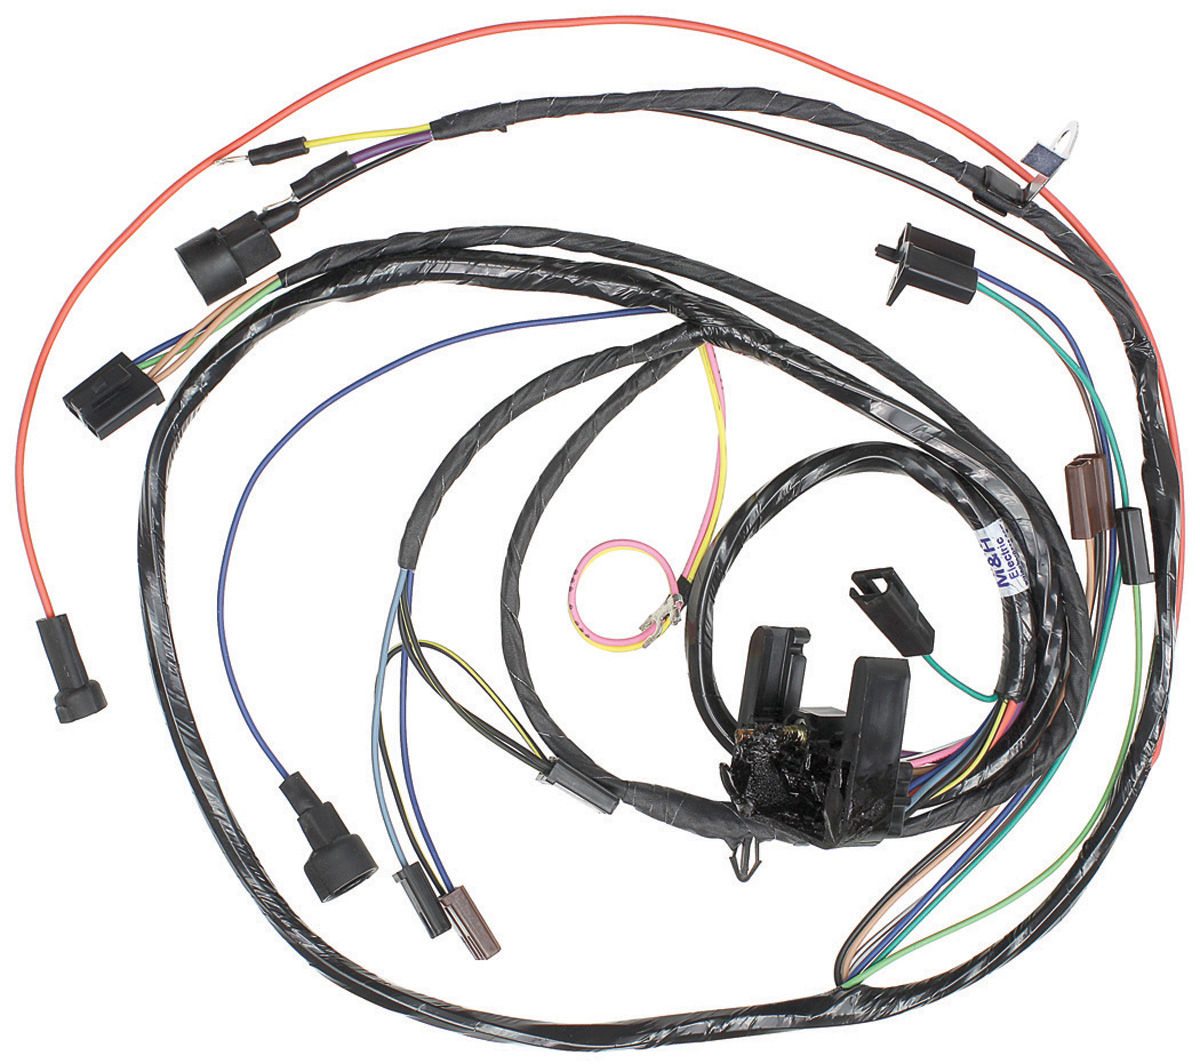 71 chevelle ss dash wiring diagram white rodgers thermostat diagrams camaro harness all data 1971 great installation of u2022 1980